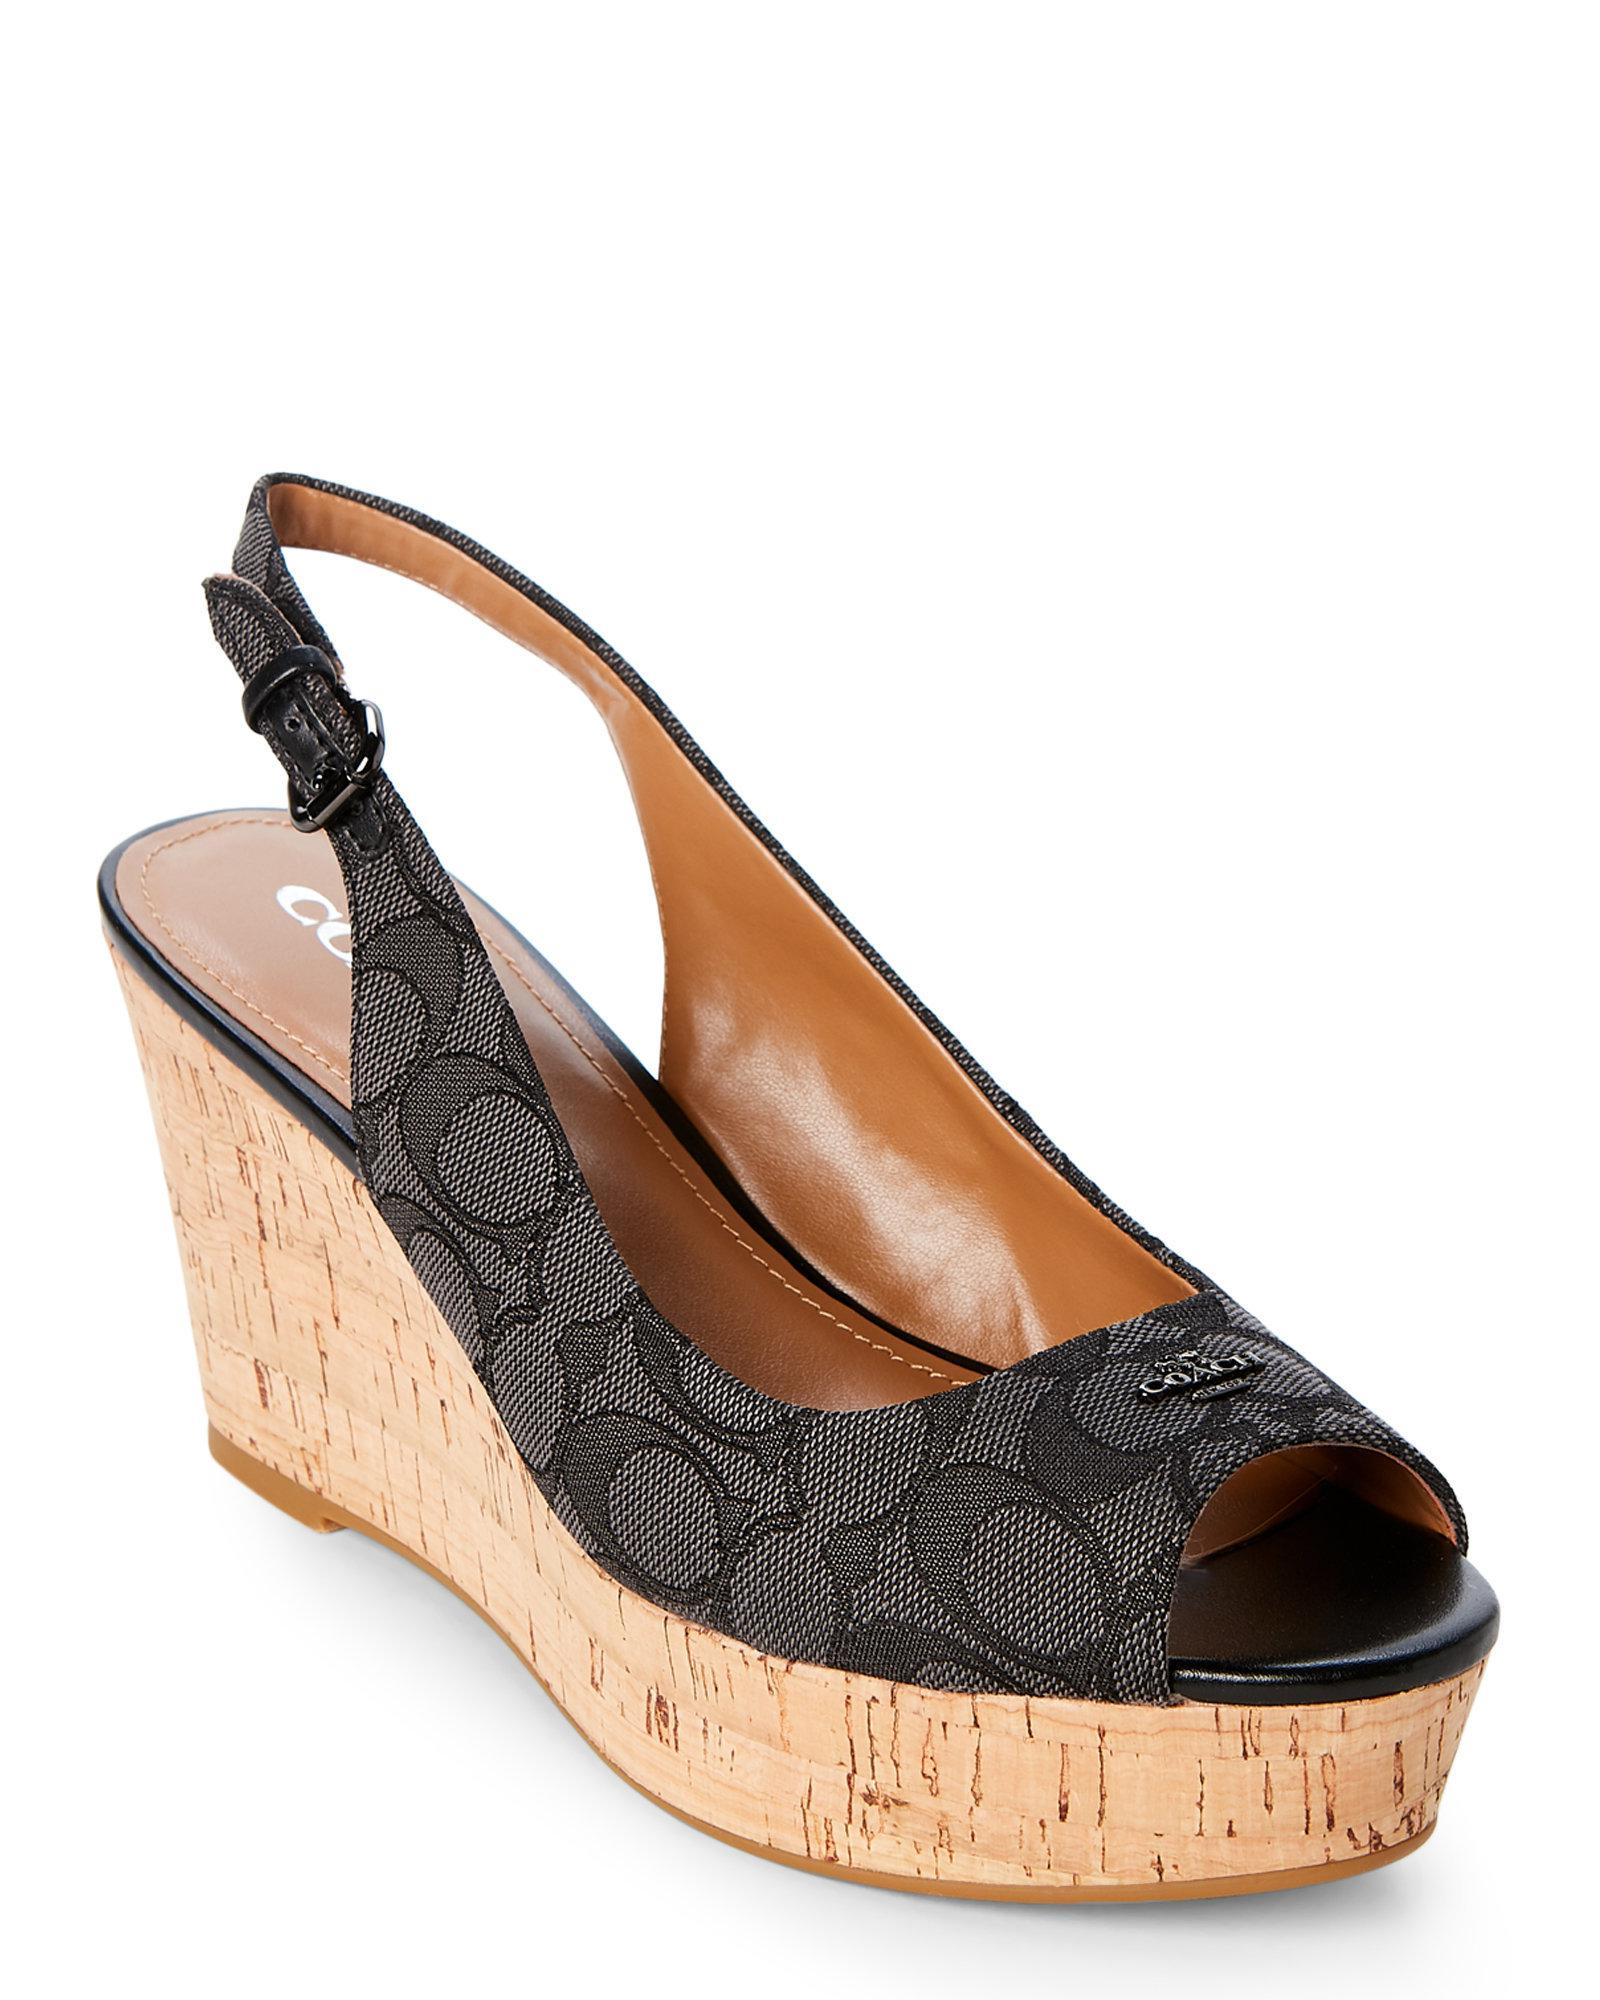 6fddcb12f31 best lyst coach black smoke ferry signature cork wedge sandals in black  5afea 408d6